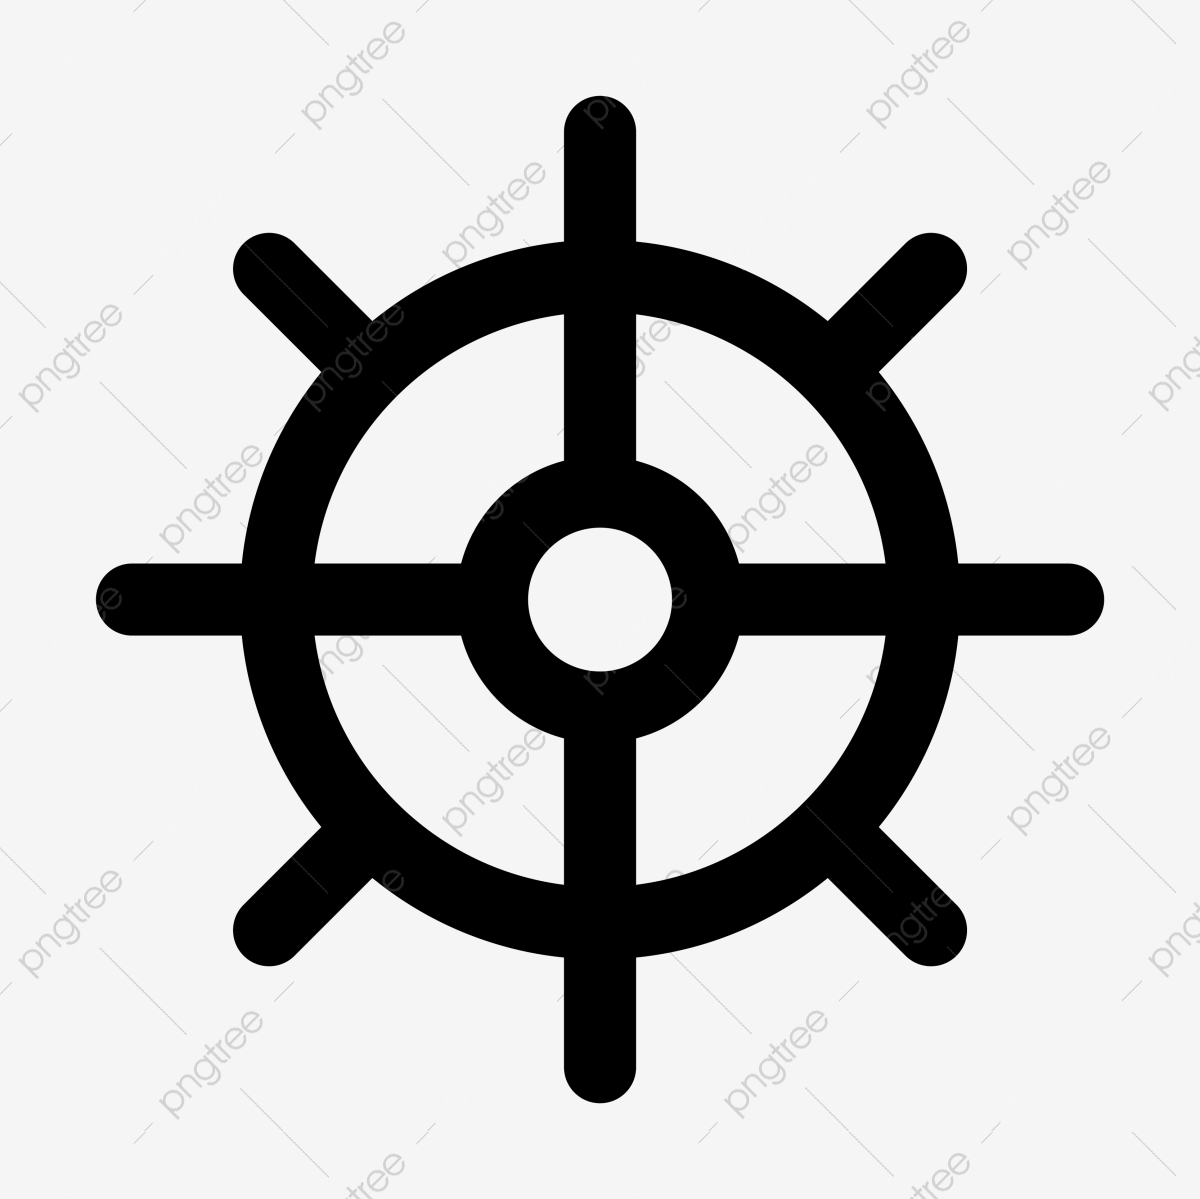 steering wheel line icon vector line icons wheel icons steering png and vector with transparent background for free download https pngtree com freepng steering wheel line icon vector 5082715 html